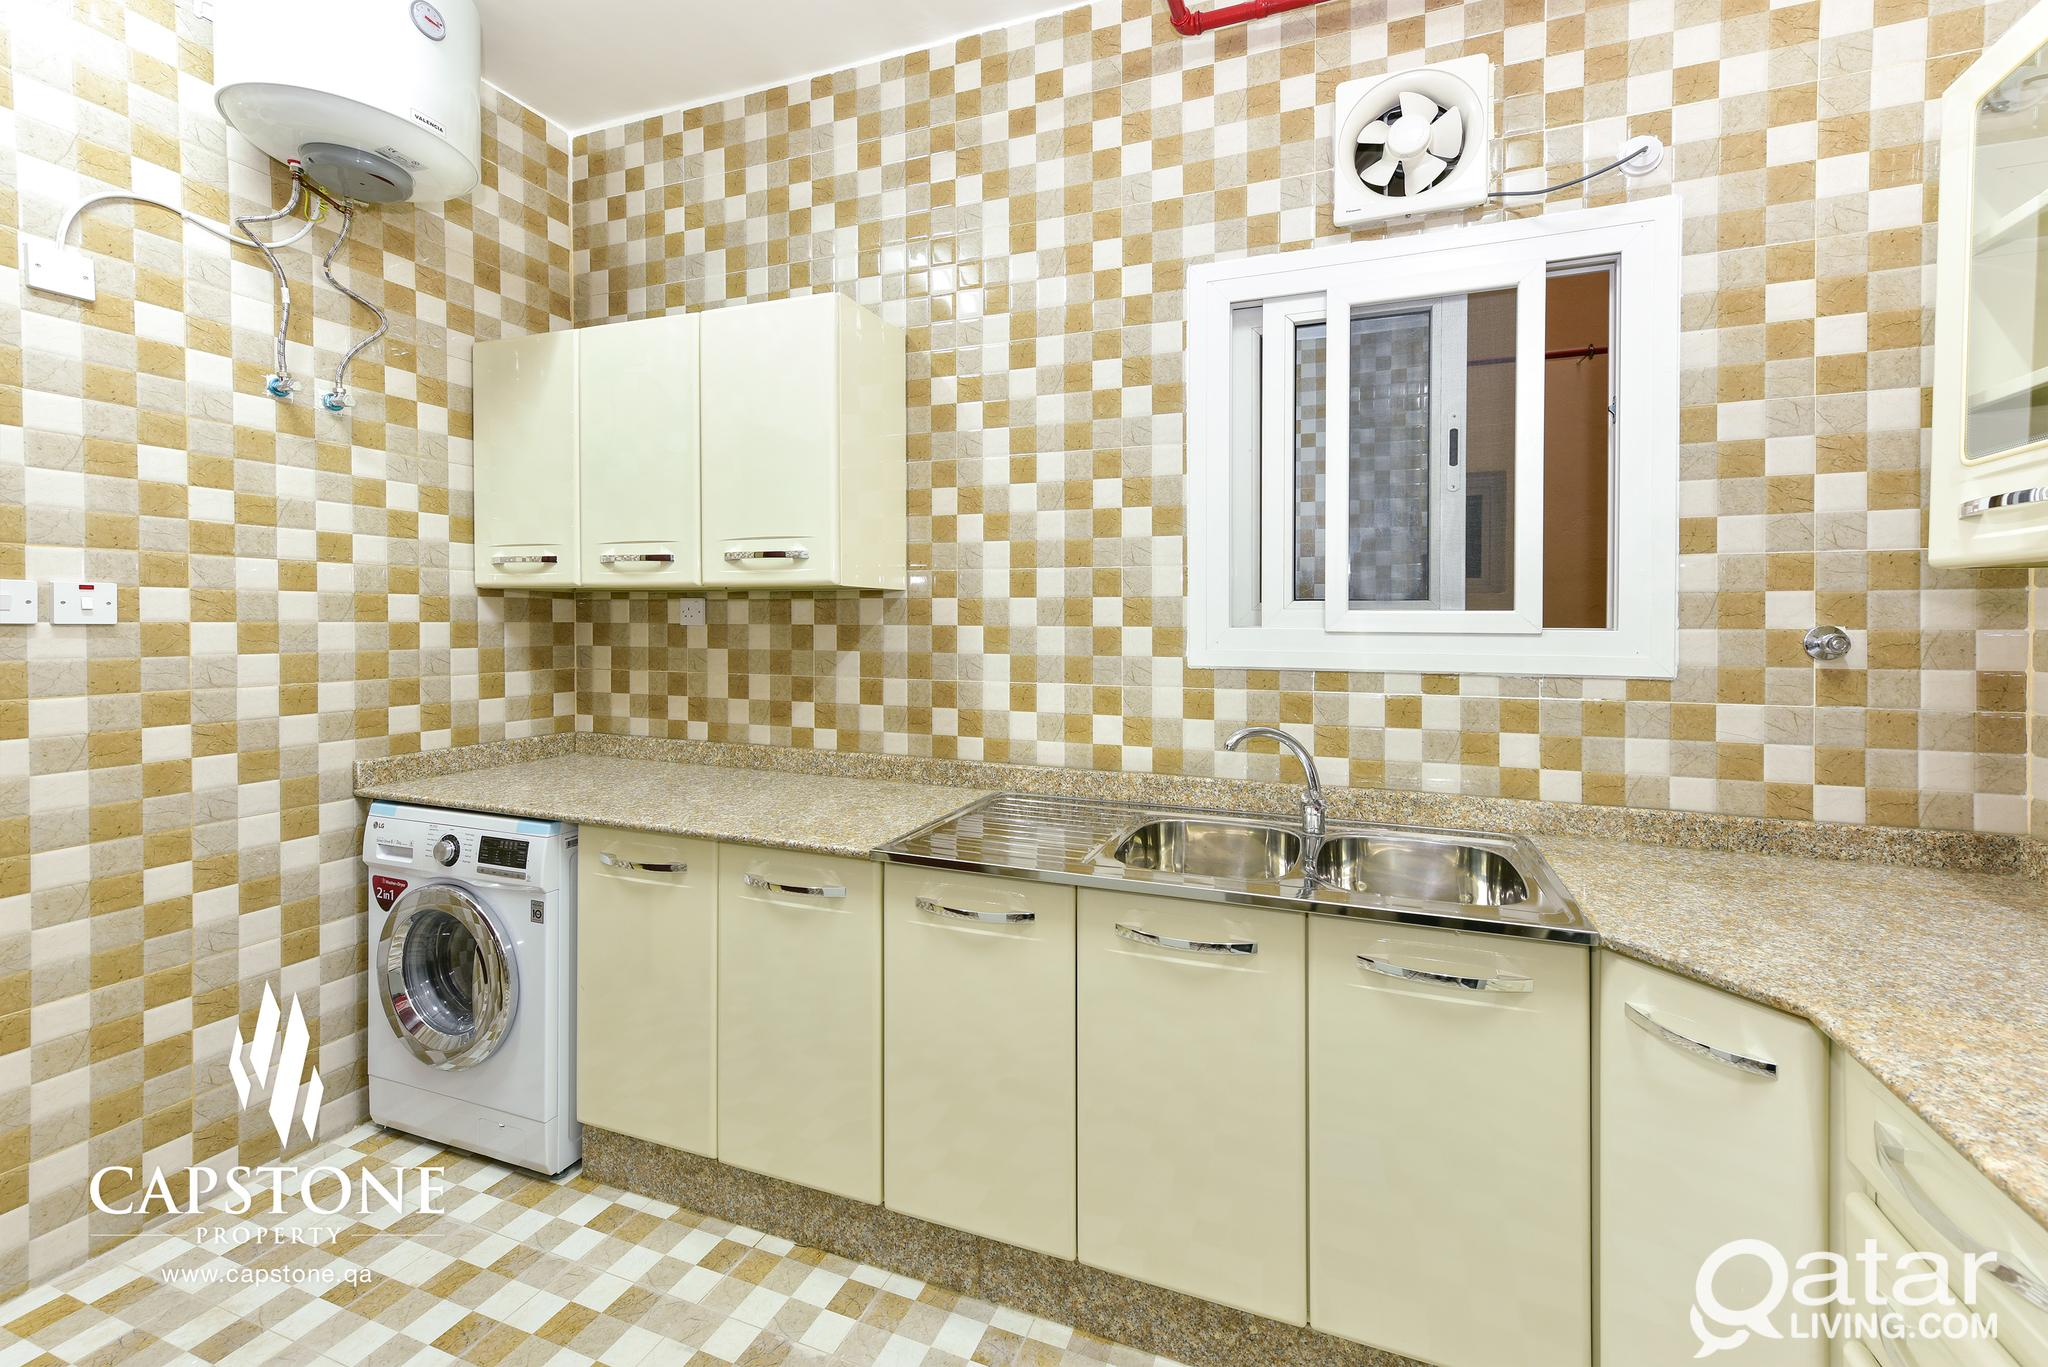 FREE UTILITIES!! NO COMMISSION! FF 2BR APARTMENT